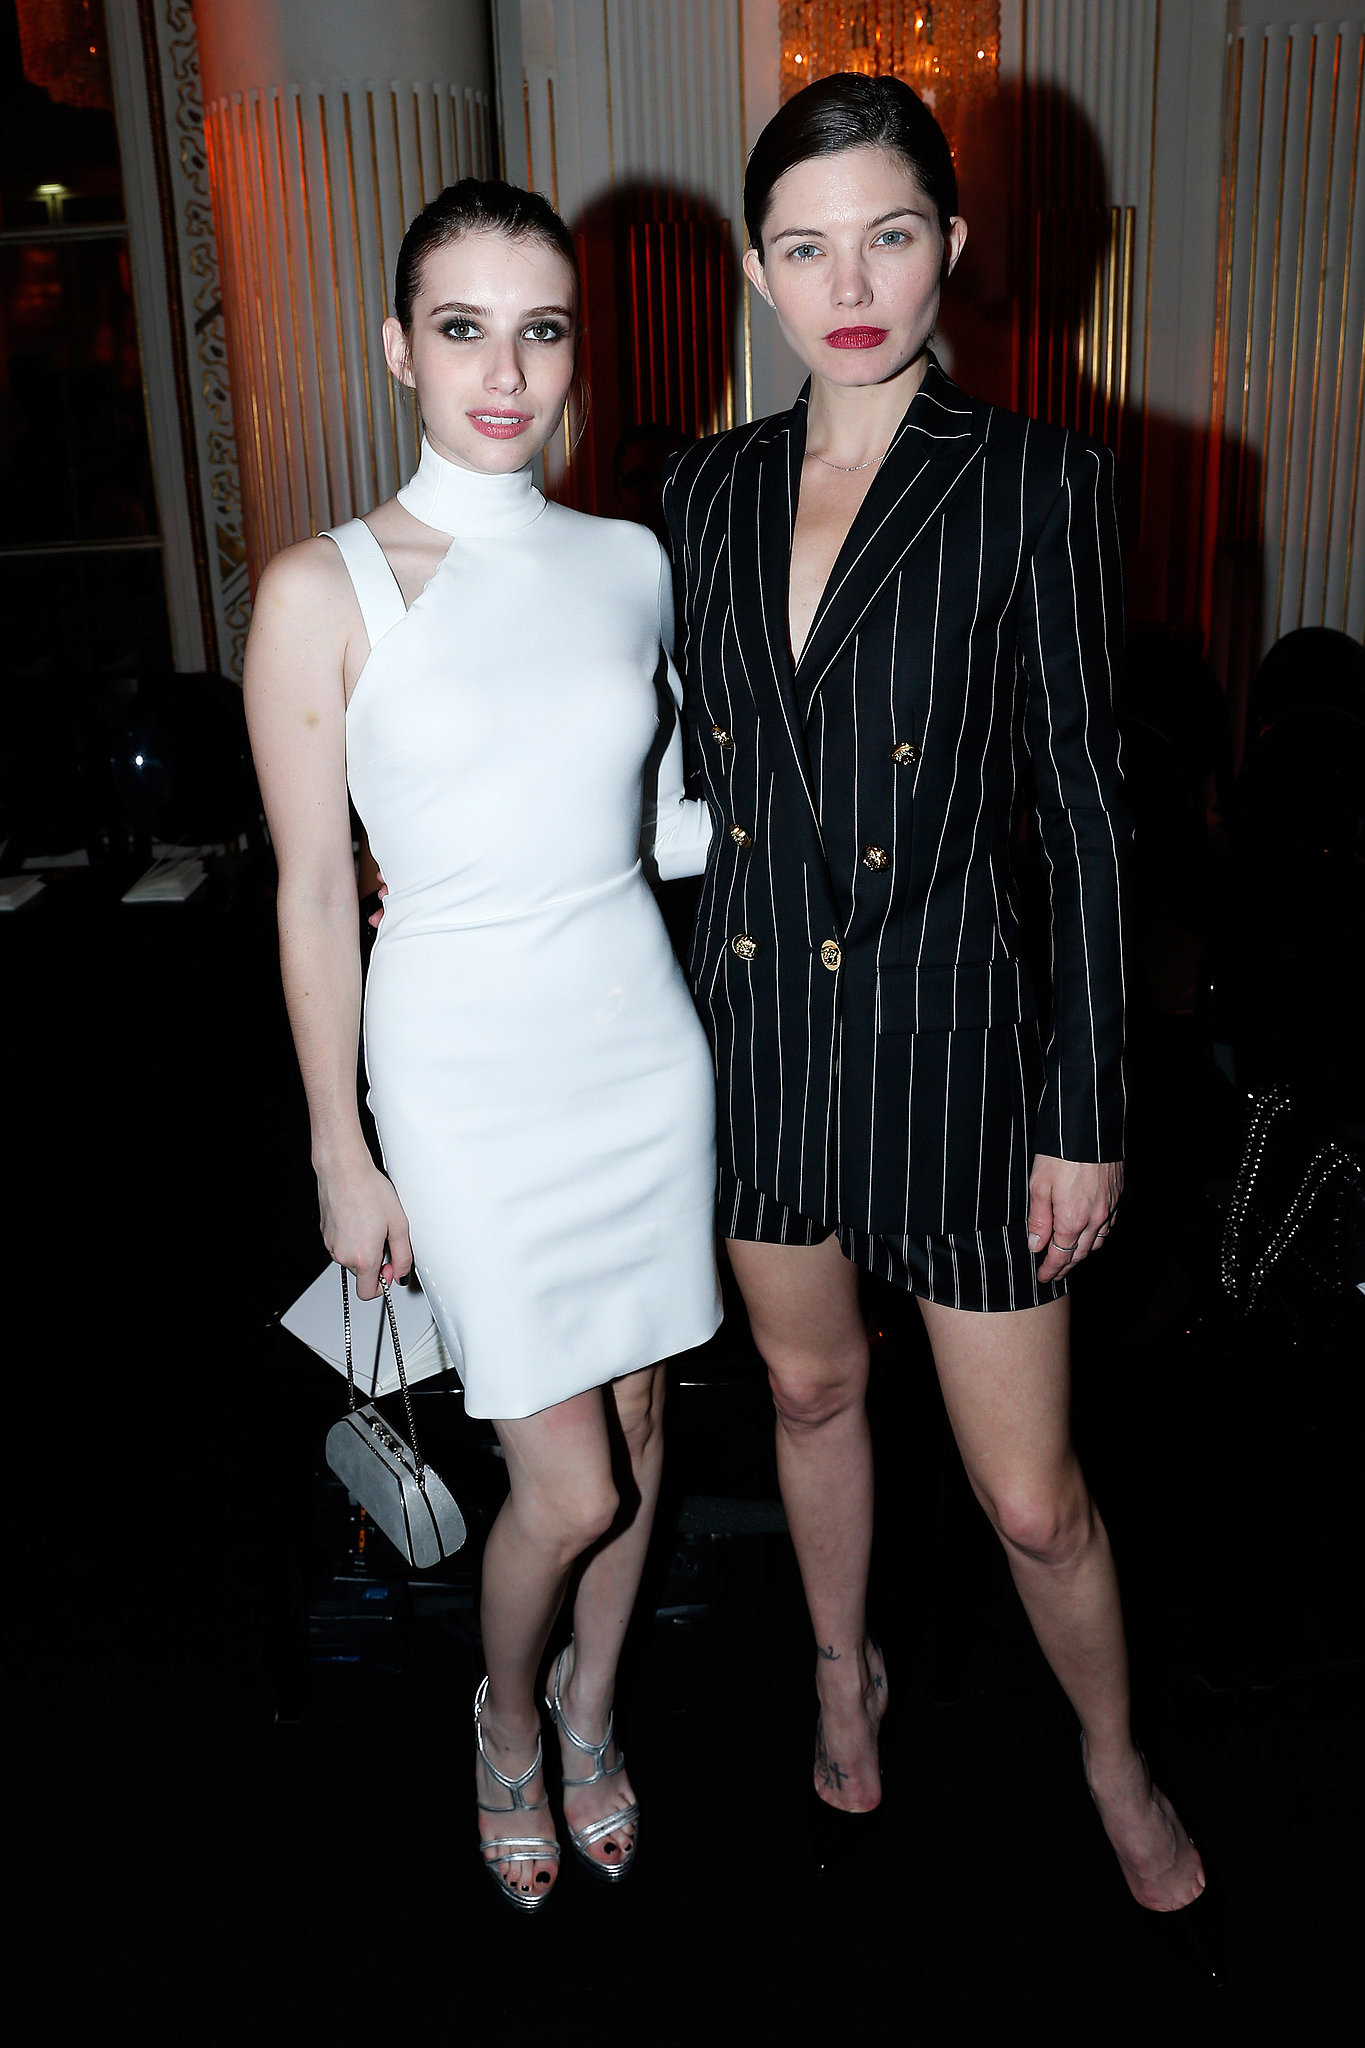 Black and white made for a dramatic pairing when Emma Roberts and  Delphine Chanéac shared a shot at Atelier Versa